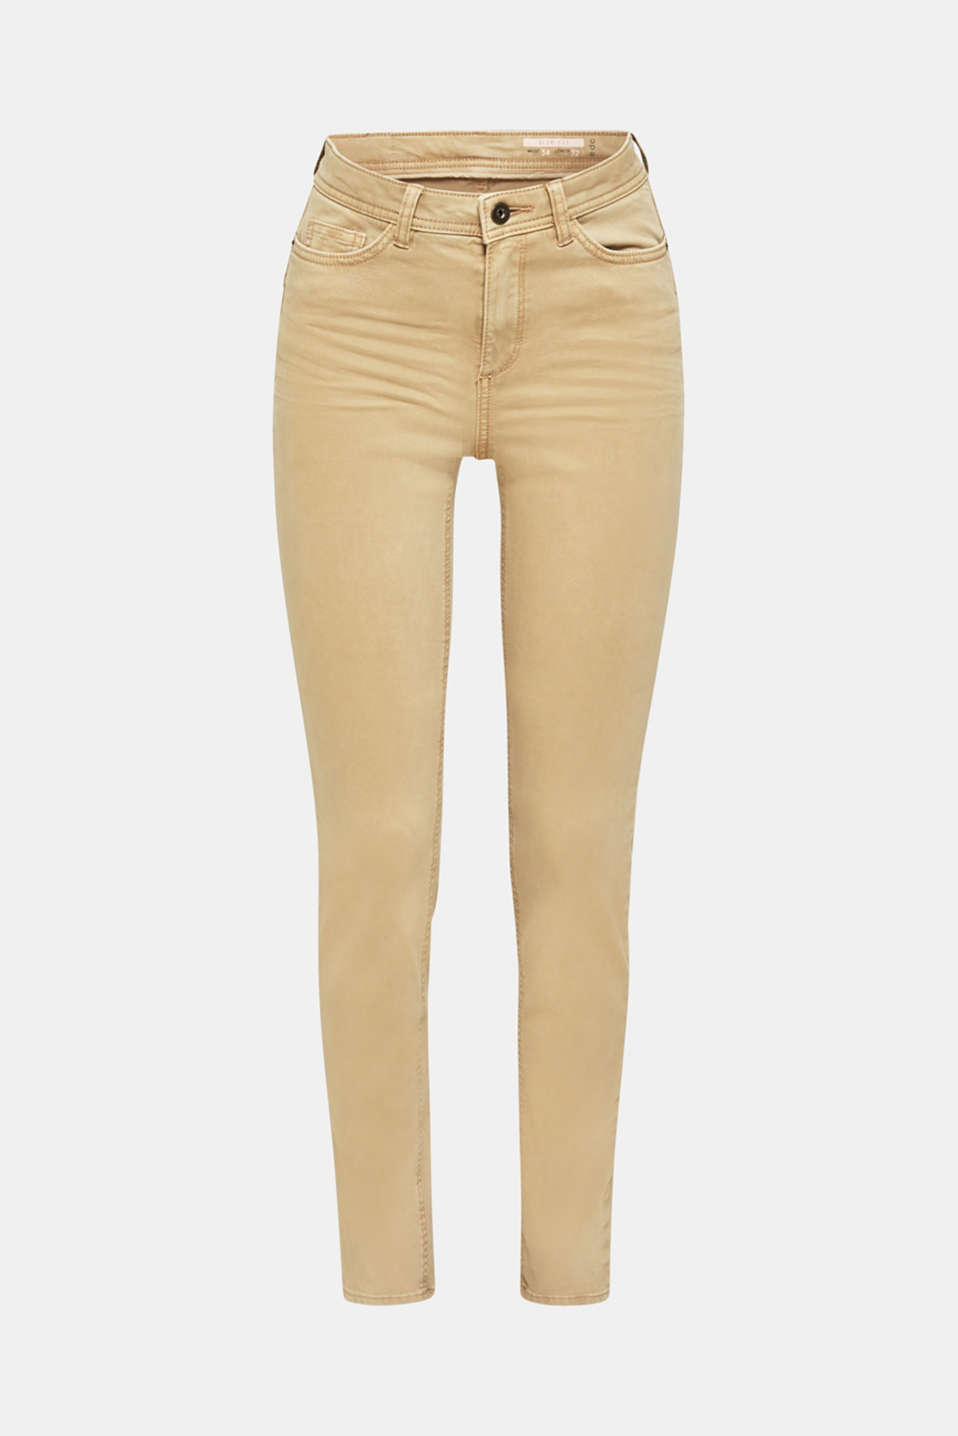 Washed-effect stretch trousers, KHAKI BEIGE, detail image number 8